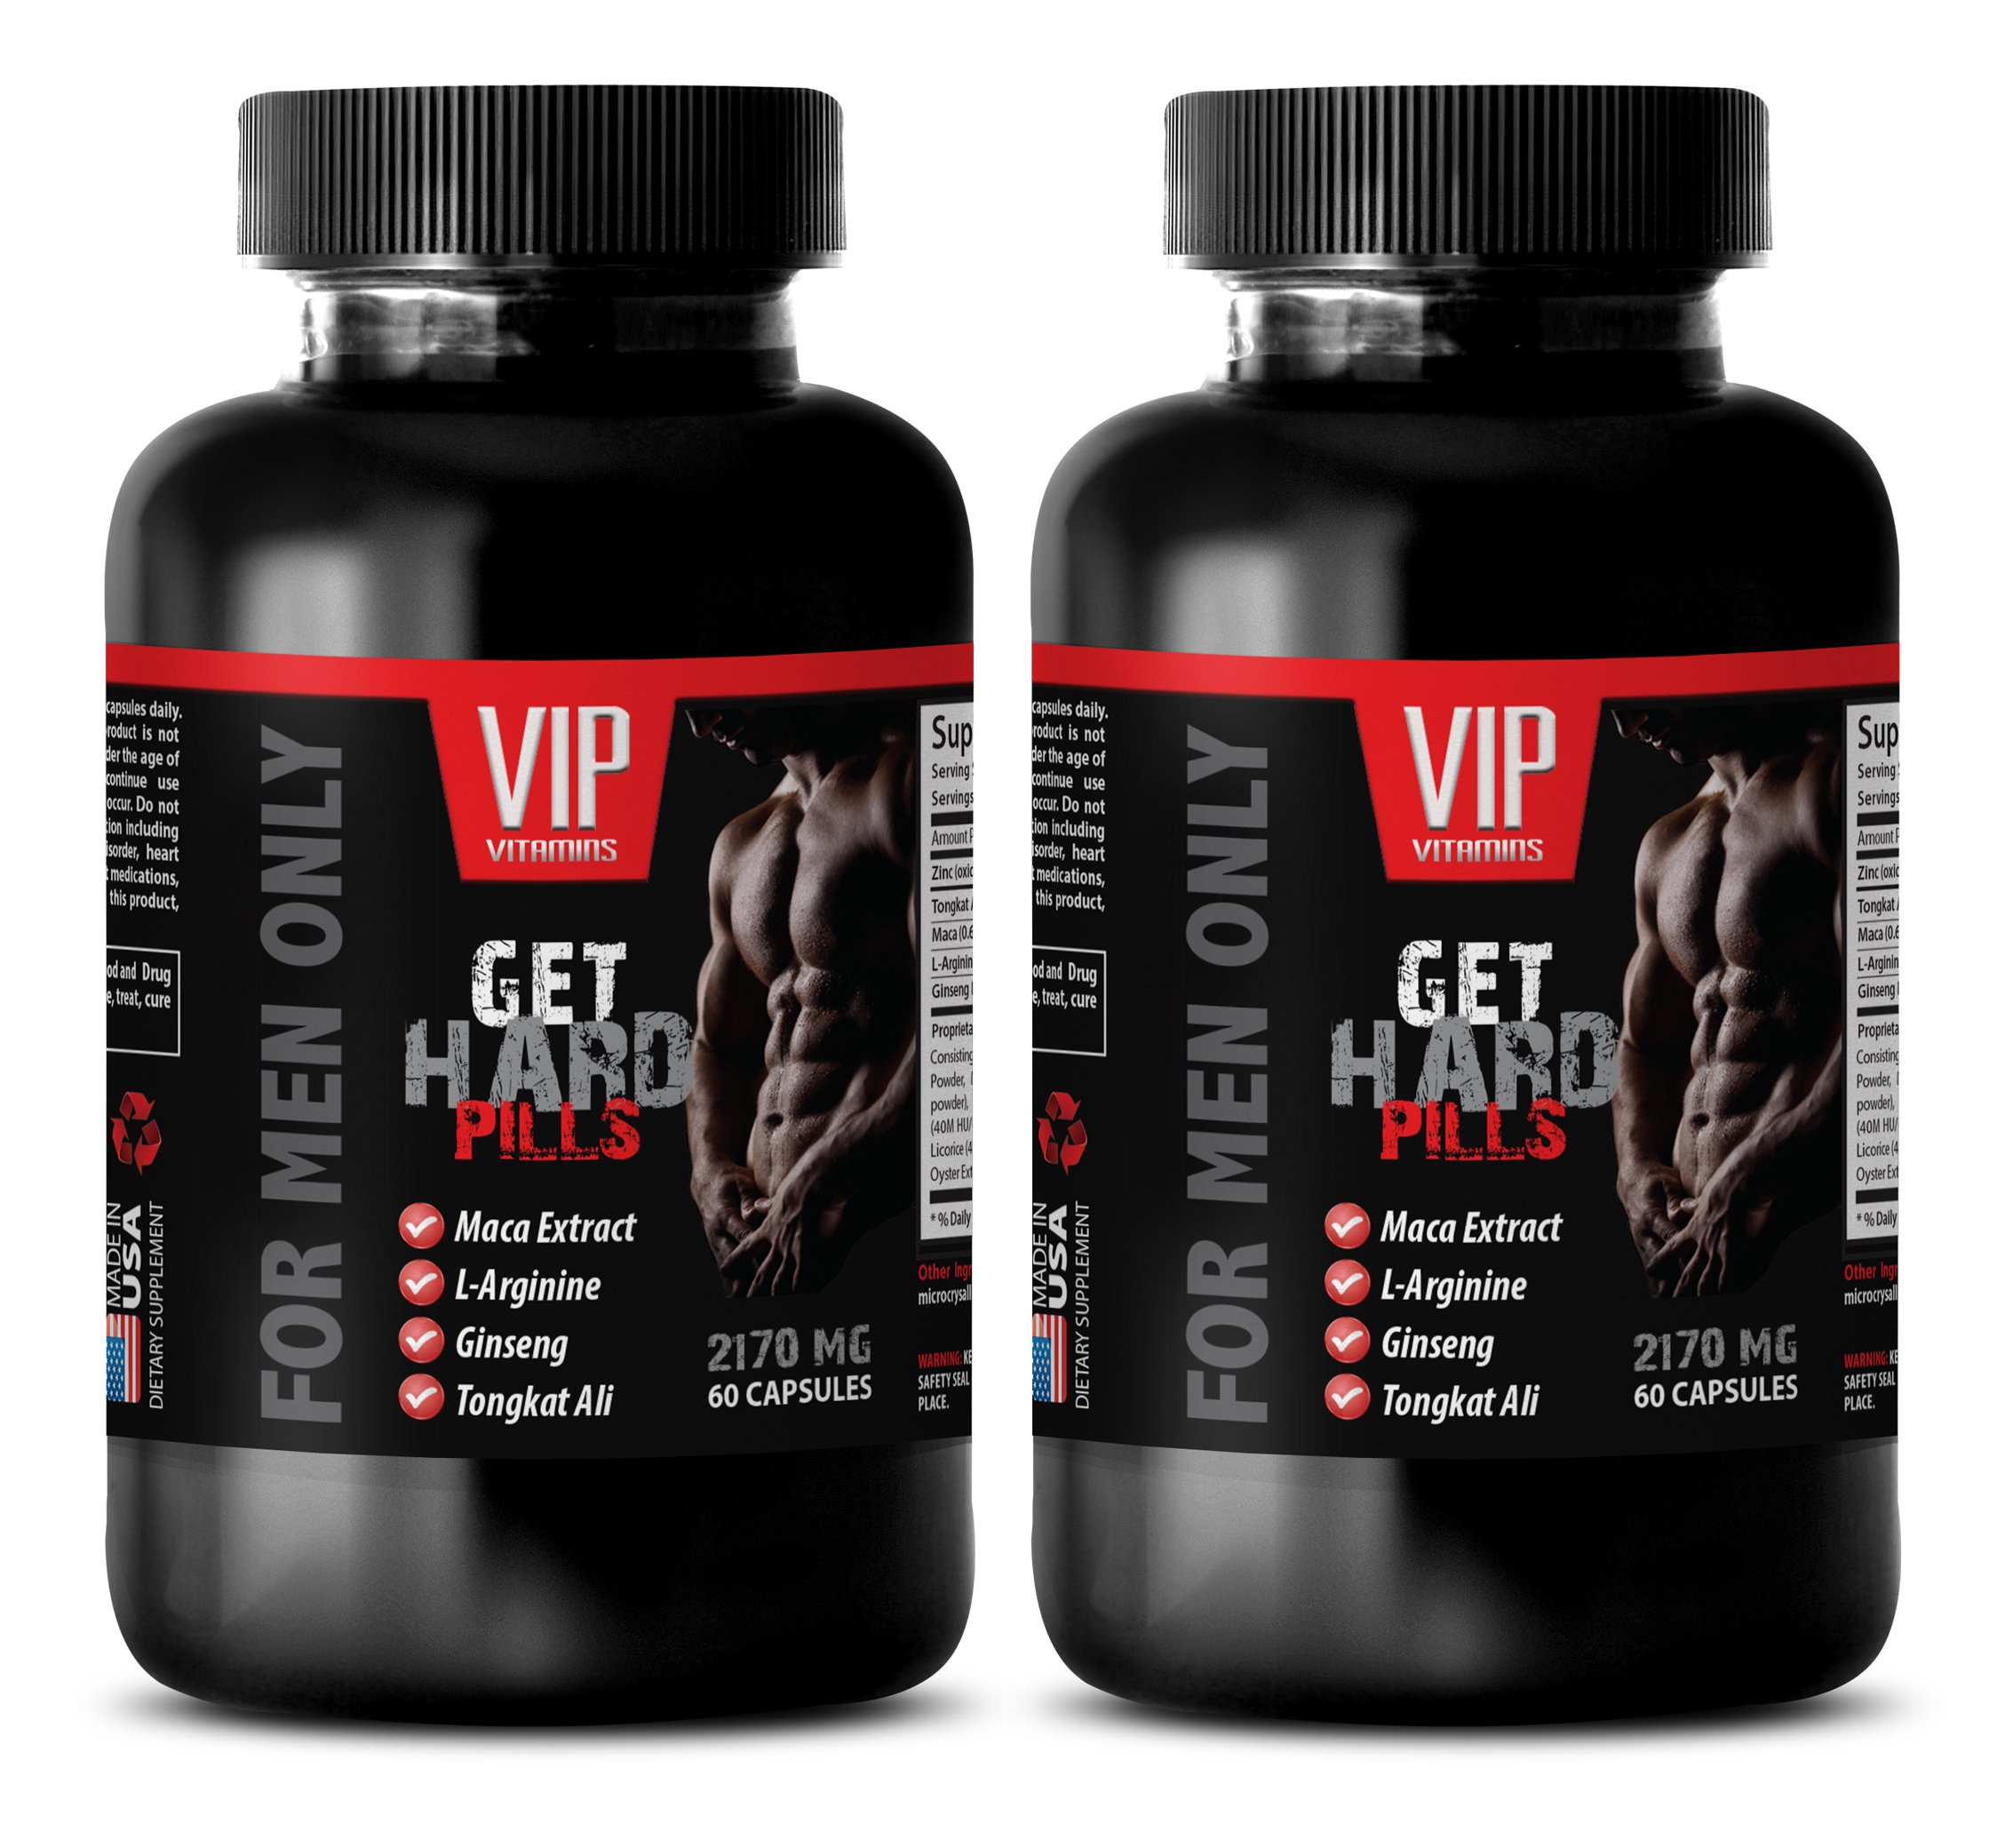 Sexual Male Performance Enhancement Pill - GET Hard Pills - for Men ONLY - L-arginine high Blood Pressure - 2 Bottles 120 Capsules